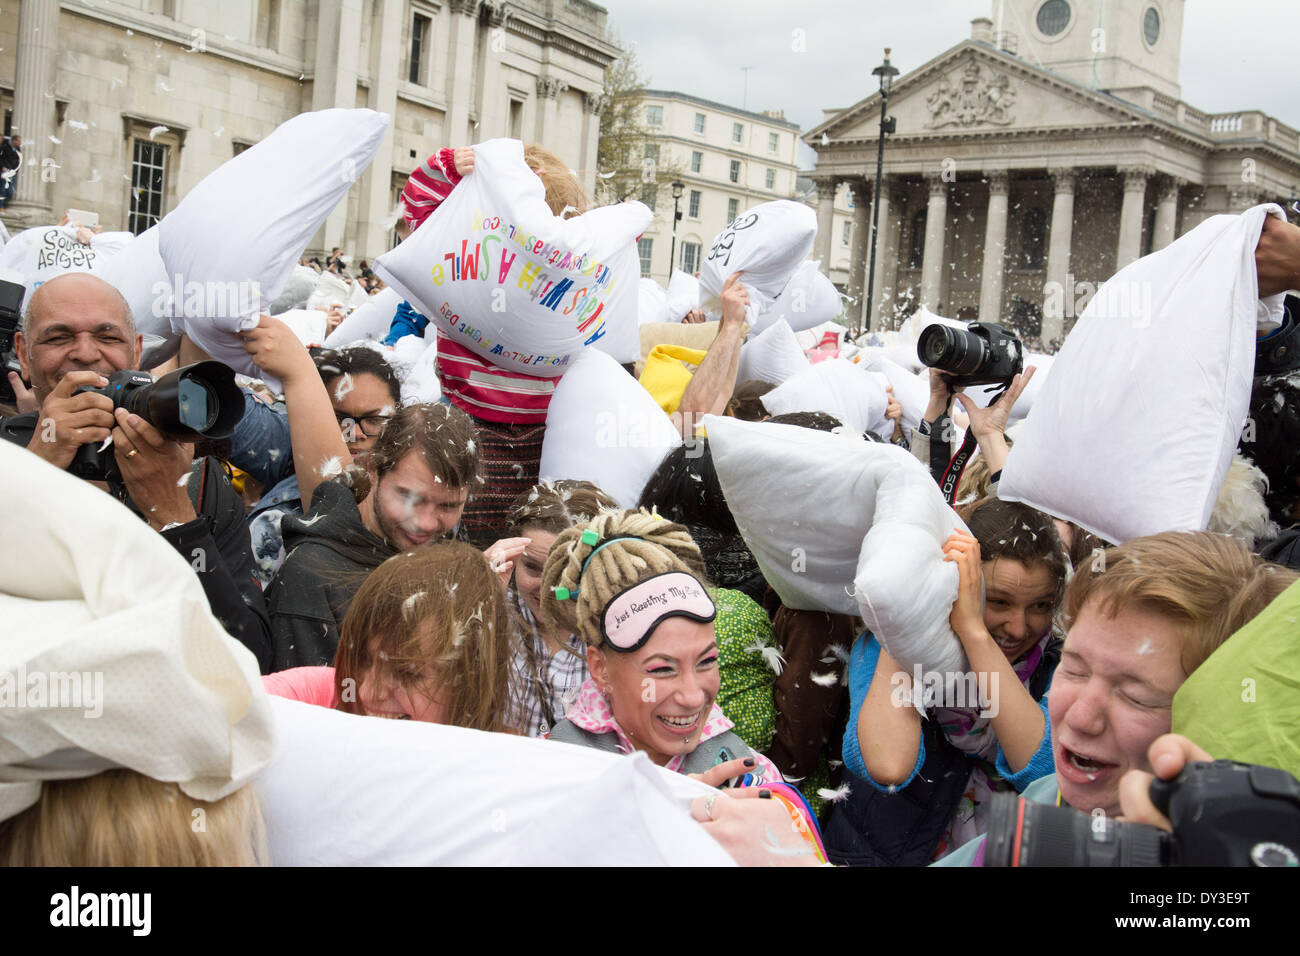 A laughing, grimacing crowd wield their pillows during international Pillow Fight Day, an annual flashmob in which people all over the world gather together to make the feathers fly. Credit:  Patricia Phillips/Alamy Live News - Stock Image